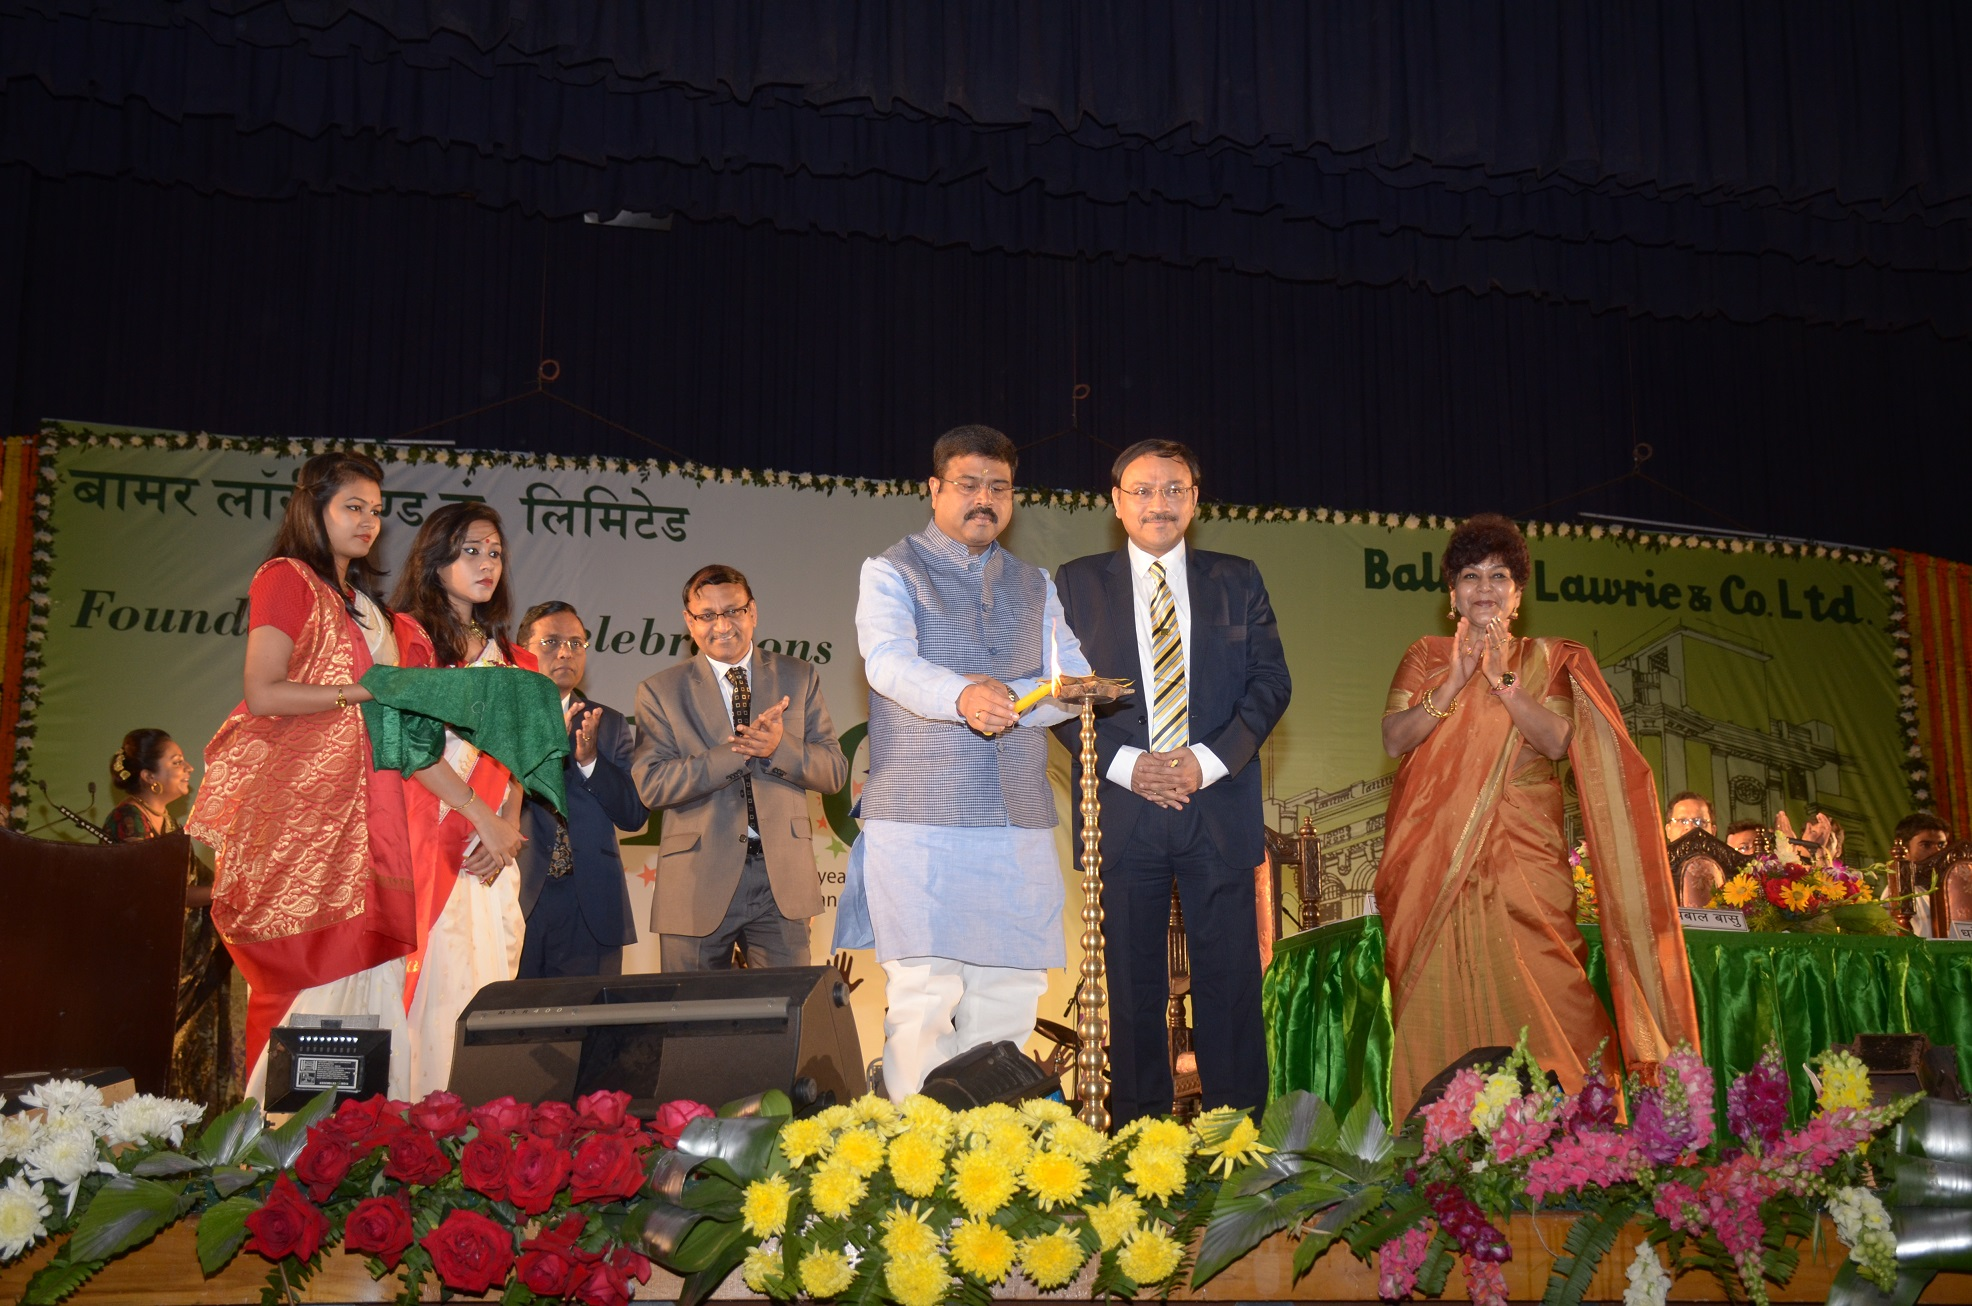 Shri Dharmendra Pradhan, Minister of State, Independent Charge, Ministry of Petroleum and Natural Gas, Chief Guest for the 150th Foundation Day event, lighting the lamp in the presence of Balmer Lawrie Directors